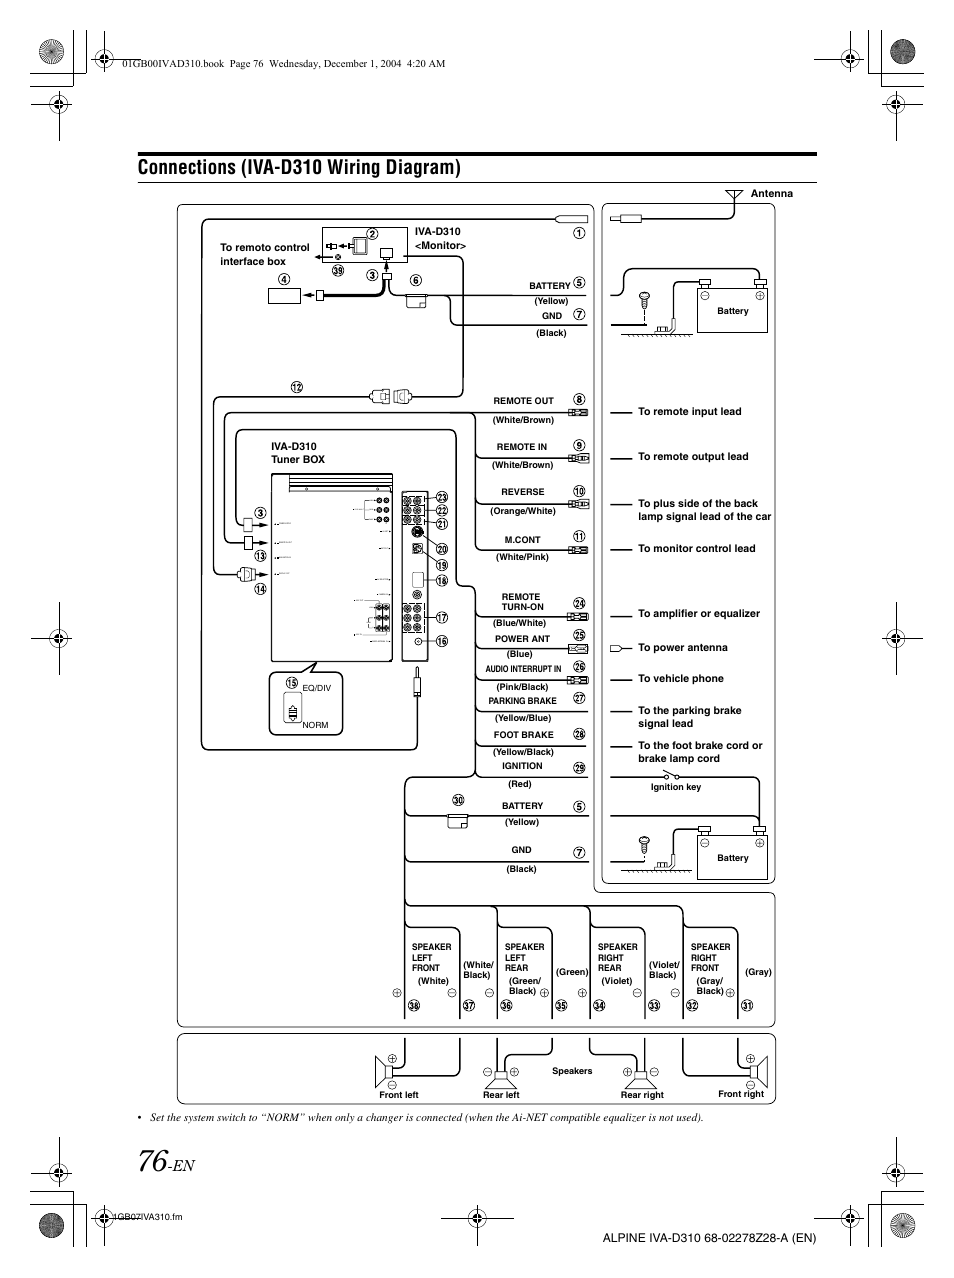 hight resolution of connections iva d310 wiring diagram alpine iva d310 user manual page 78 253